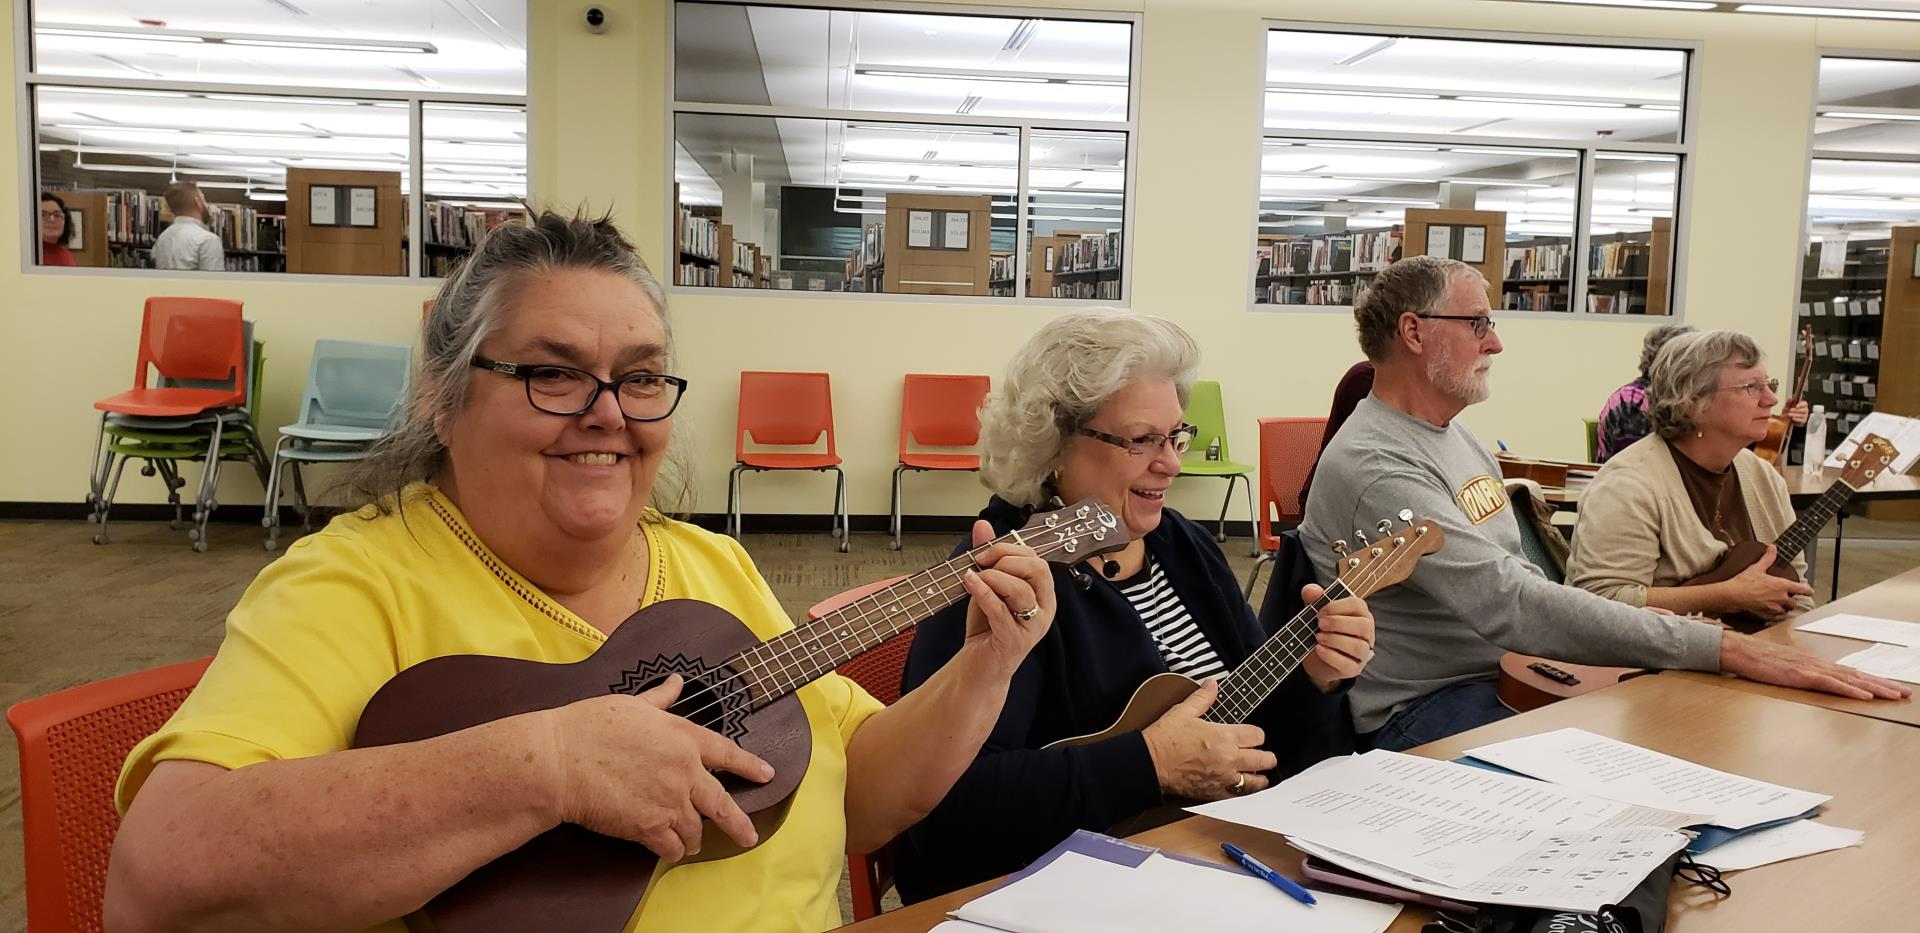 Ladies playing ukuleles in the Library STEAMspace